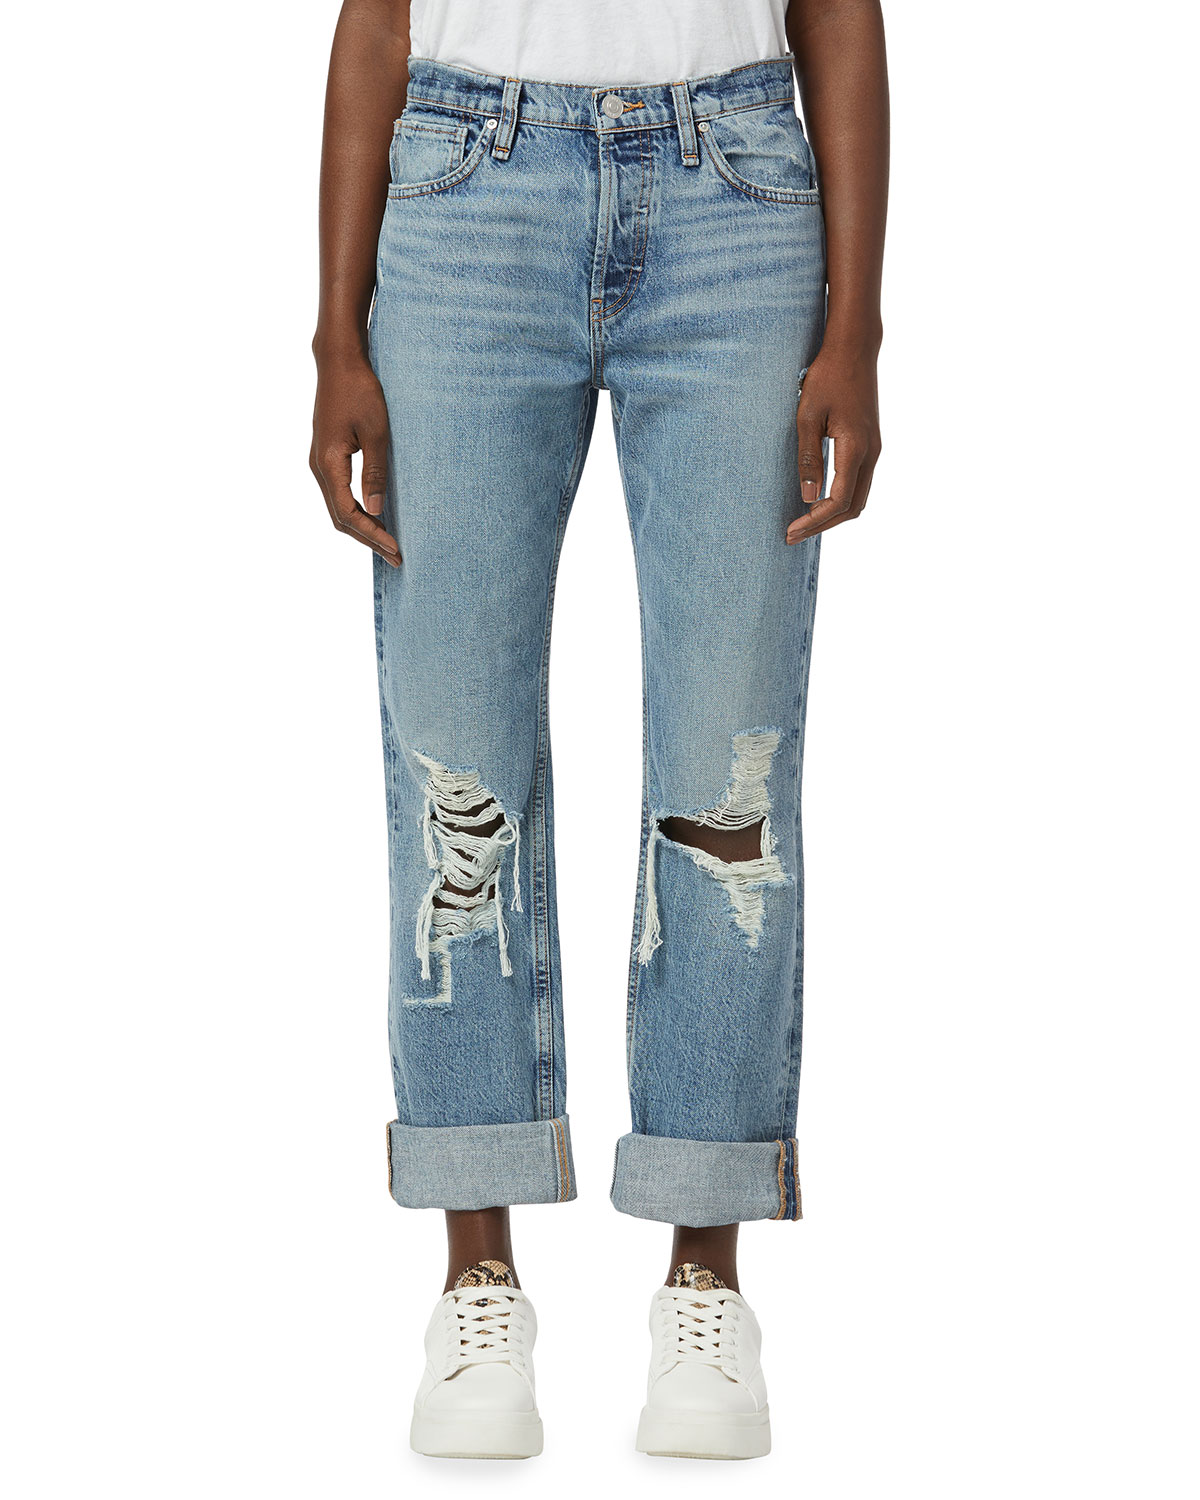 Thalia Loose-Fit Jeans with Rolled Cuffs